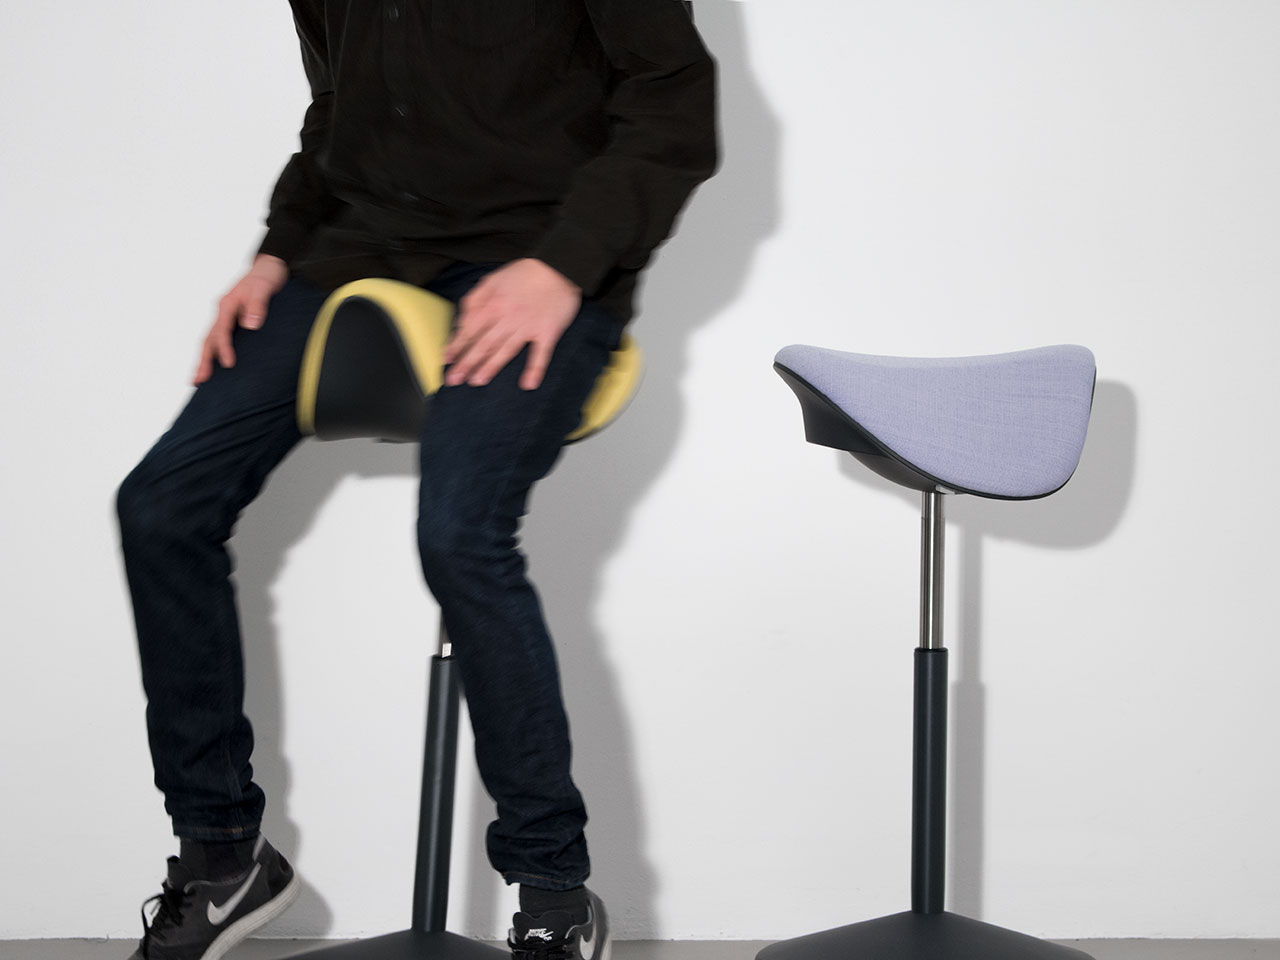 We are proud to announce the launch of our Motion chair!